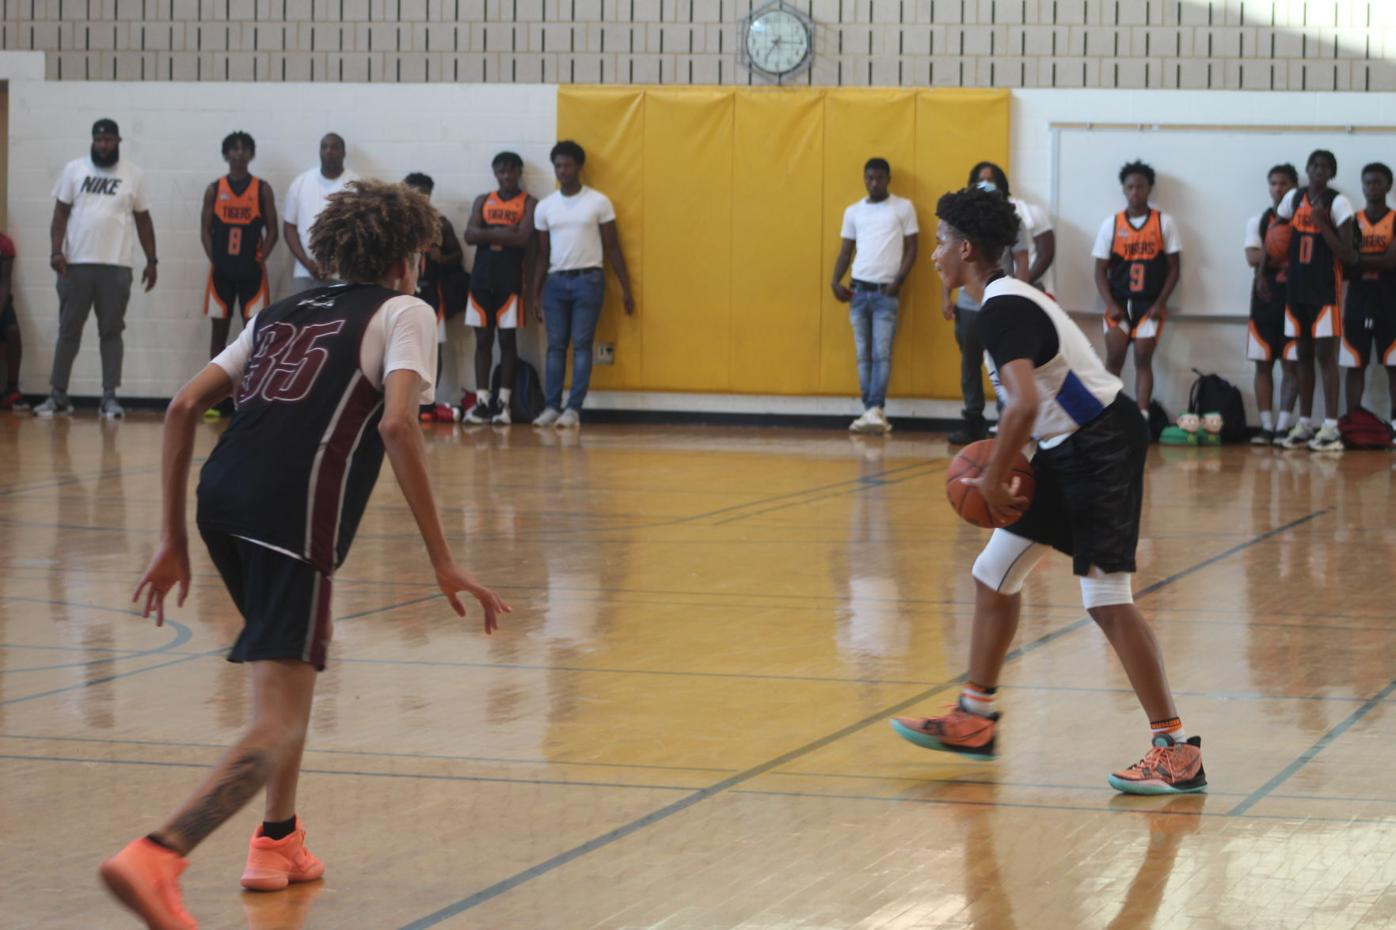 SMAC basketball players compete in summer league